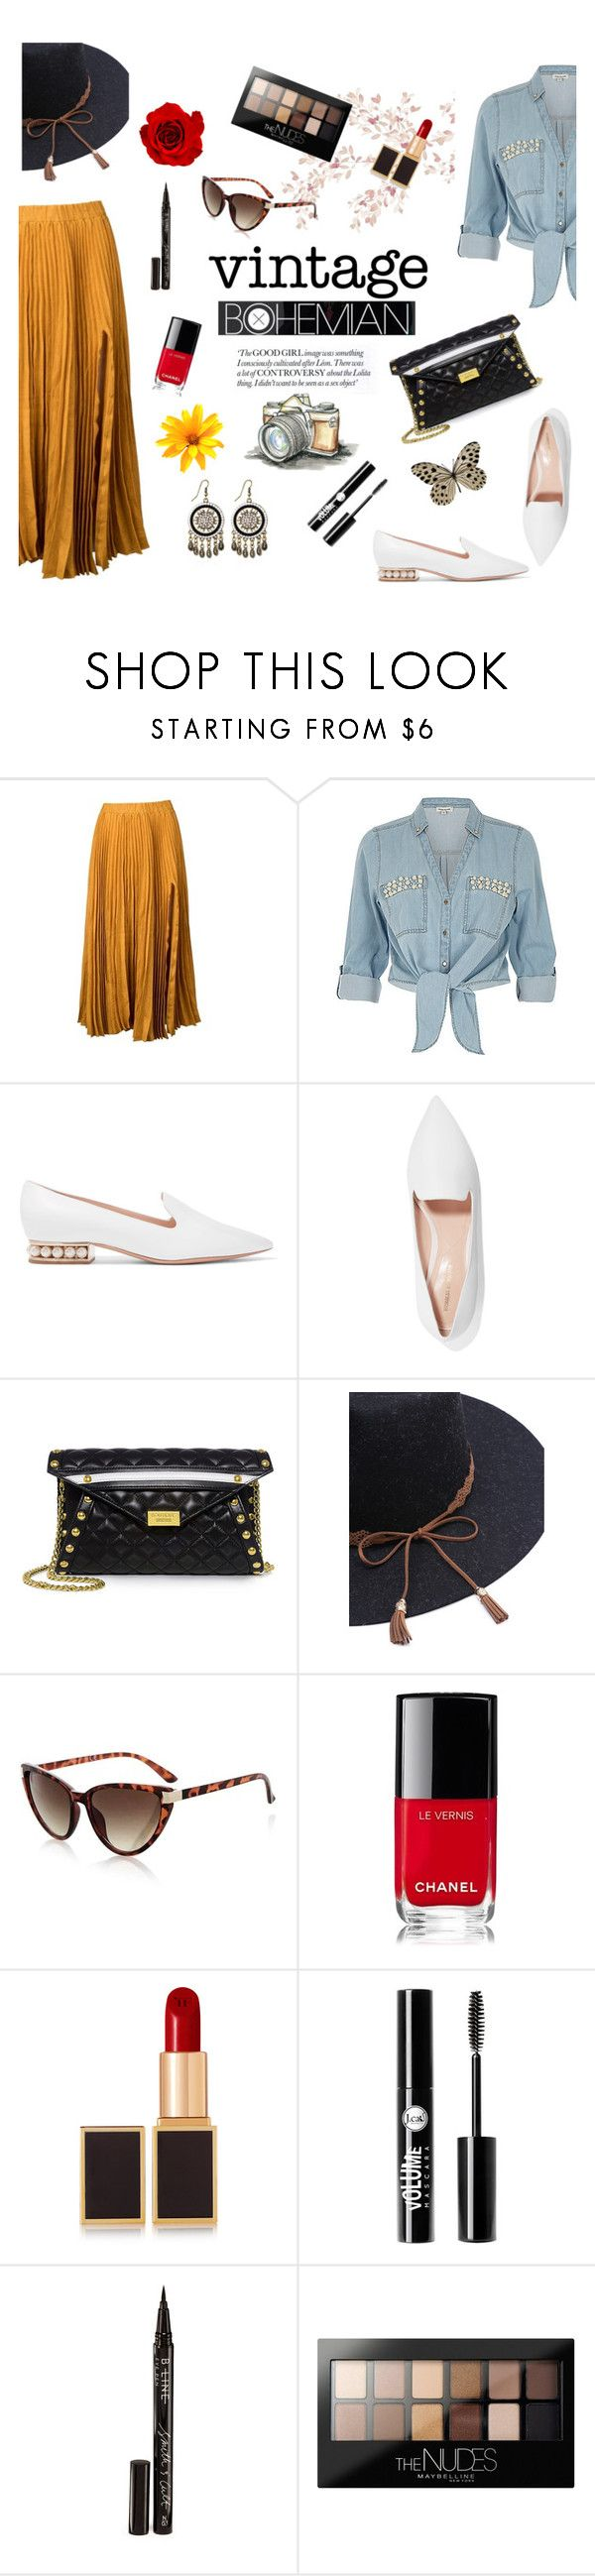 """""""Vintage Bohemian"""" by ravenclaw-phoenix on Polyvore featuring Kaelen, ZAK, Nicholas Kirkwood, Boutique Moschino, Topshop, Chanel, Tom Ford, Charlotte Russe, Smith & Cult and Maybelline"""